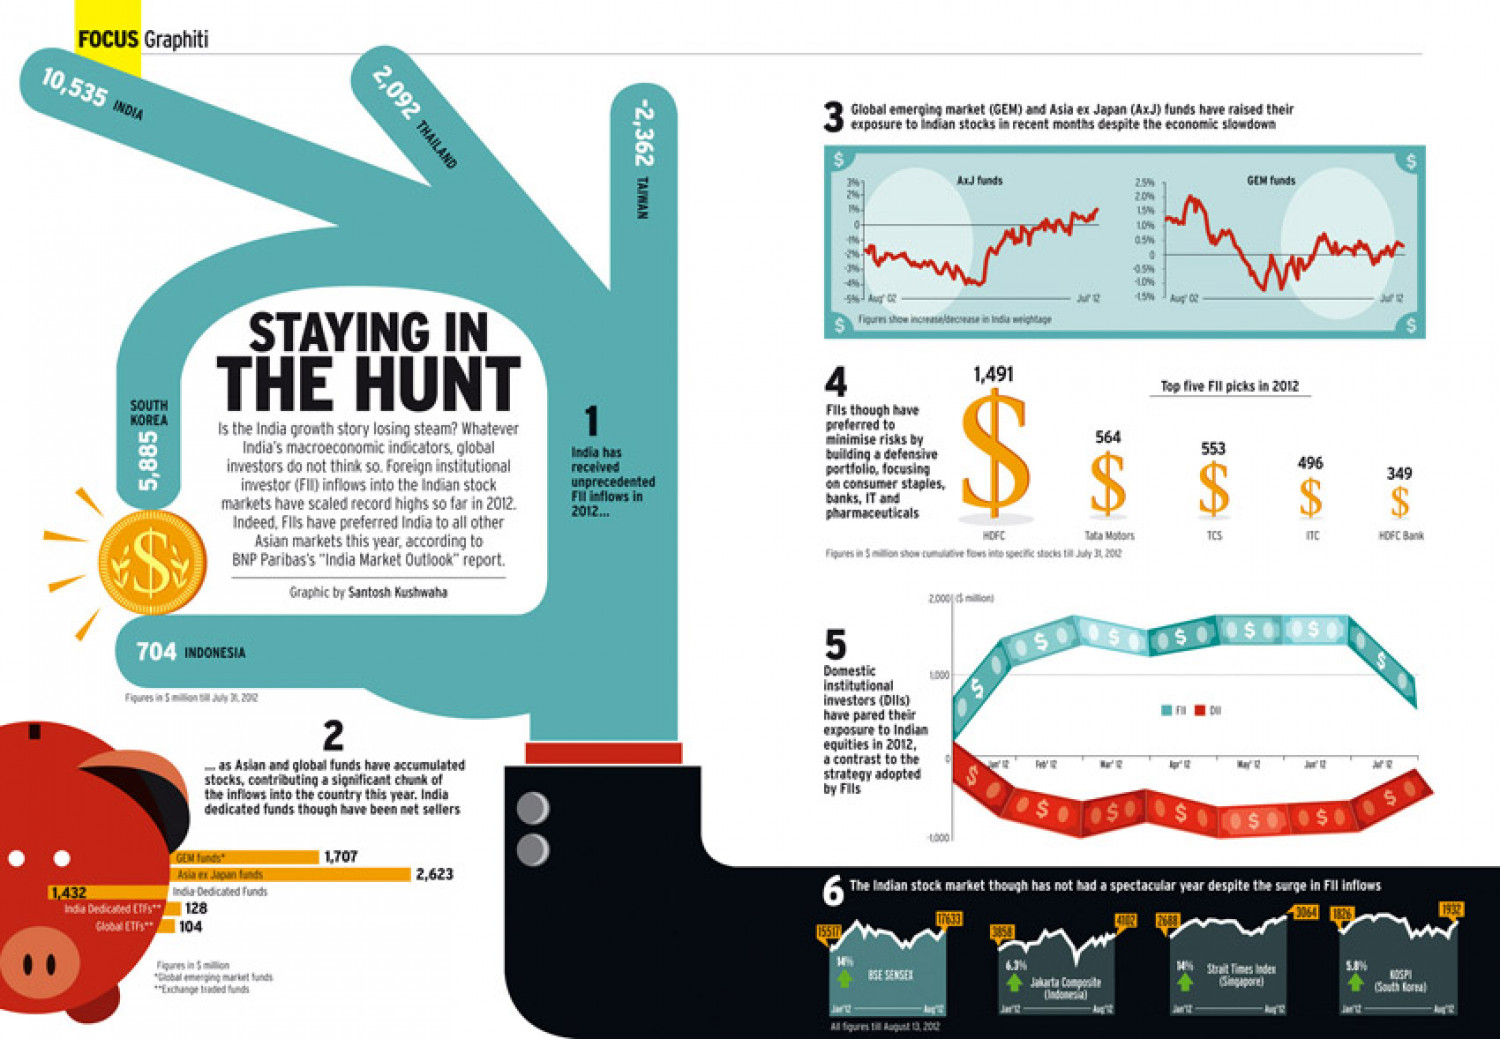 STAYING IN THE HUNT Infographic